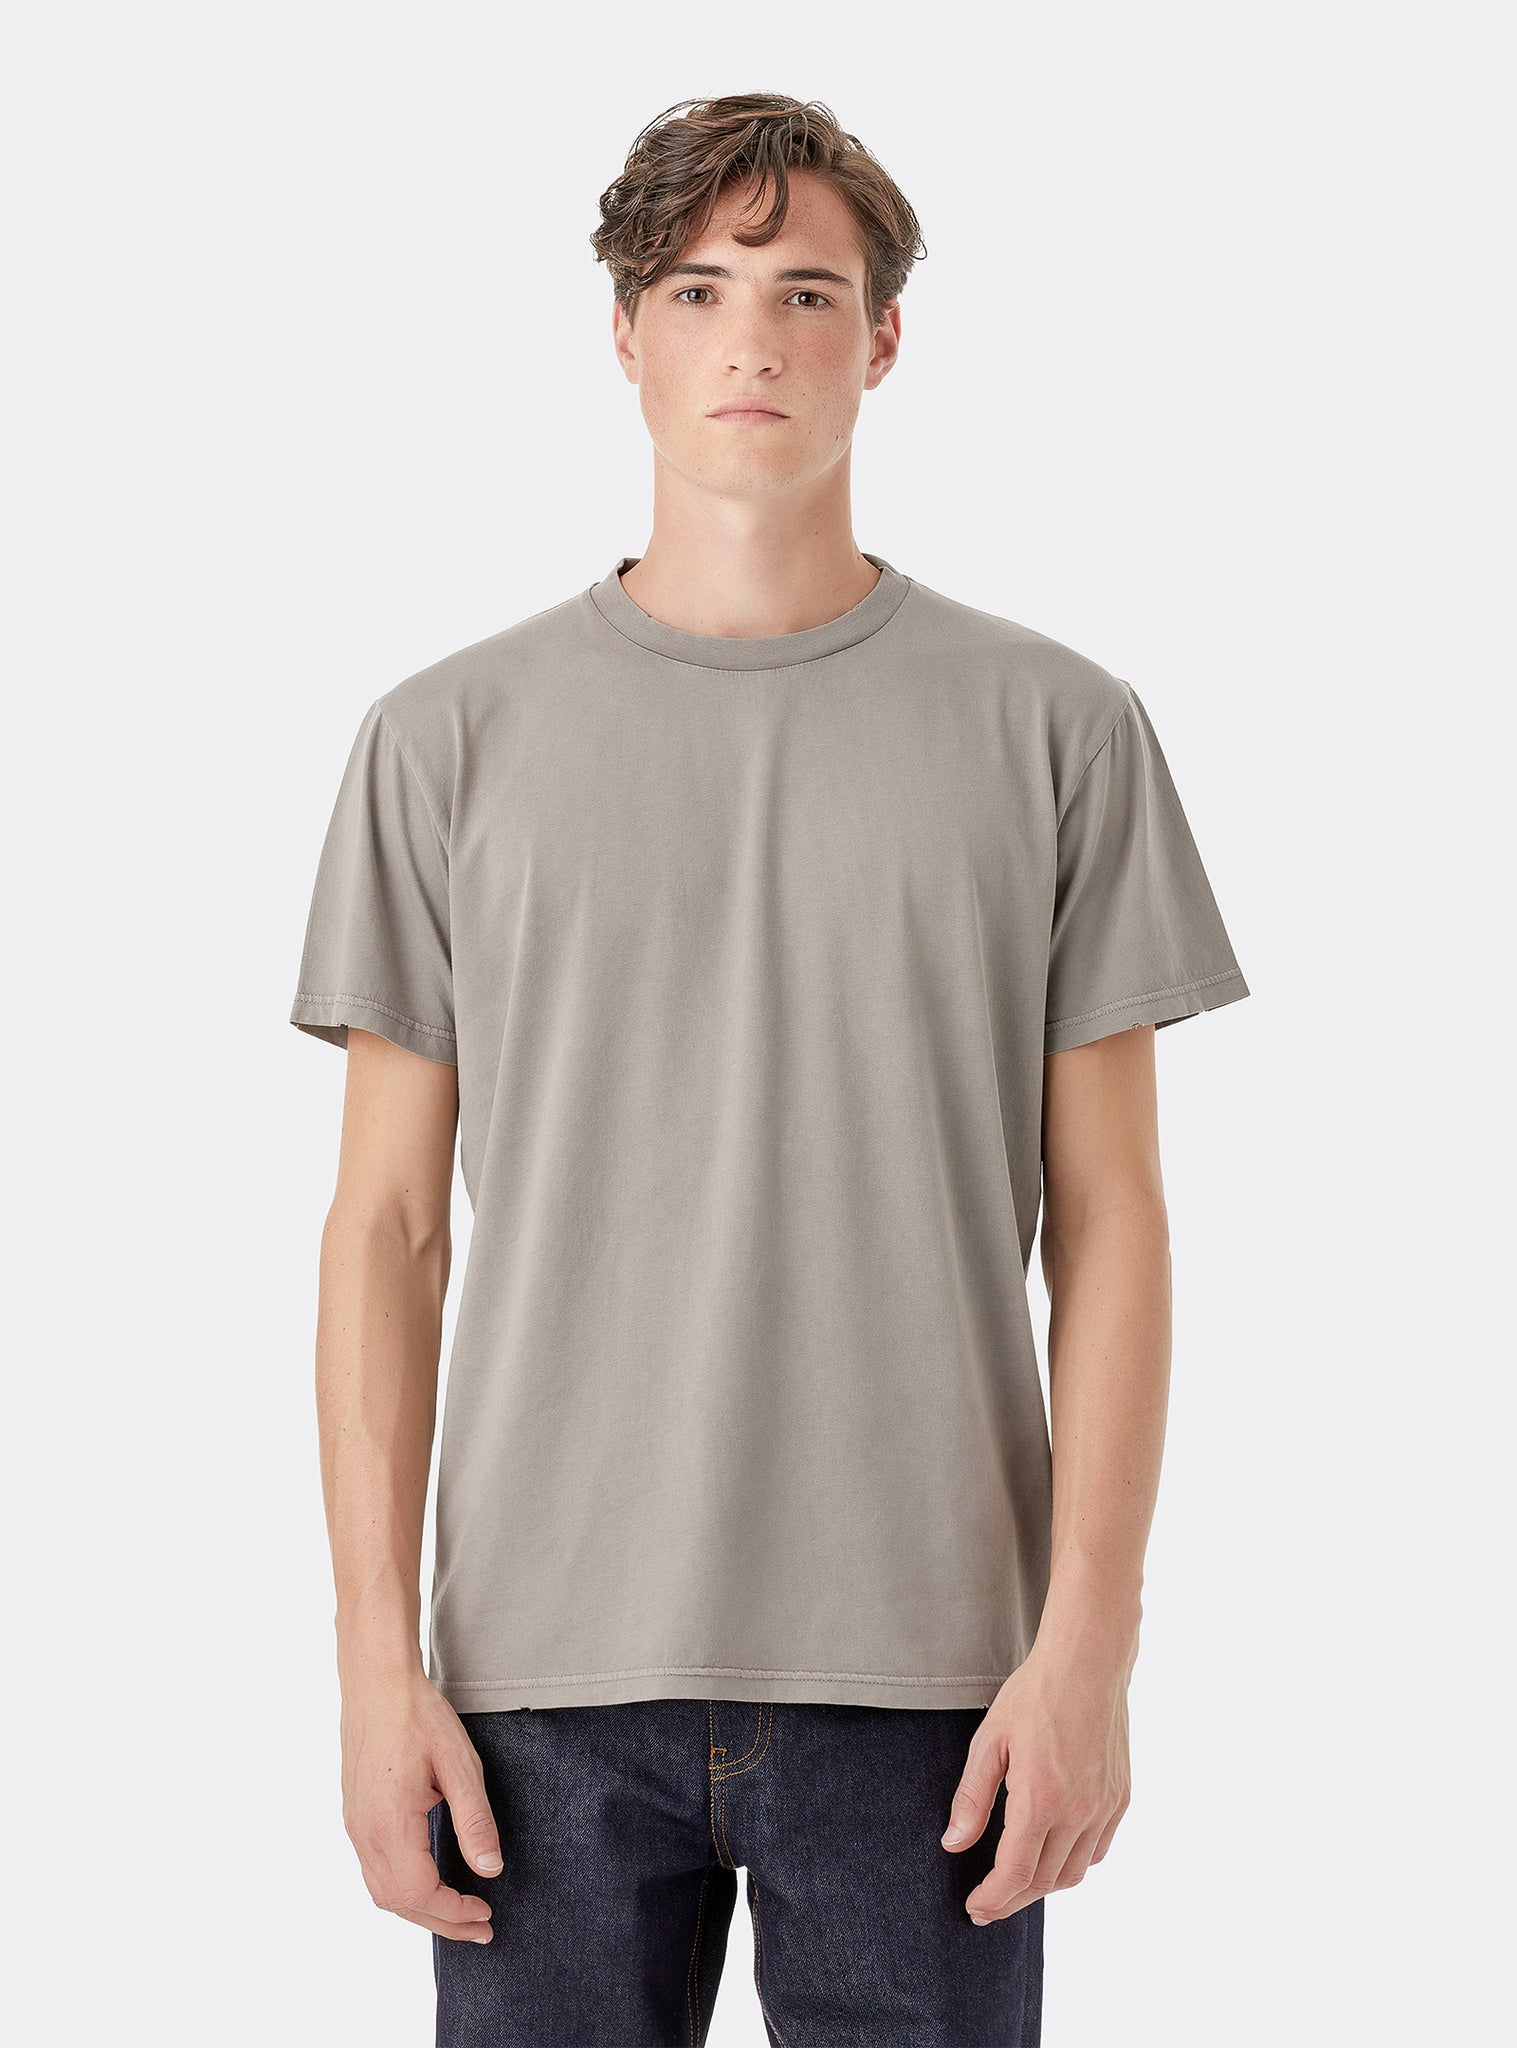 Expect I T-shirt Manches Courtes Gris Clair